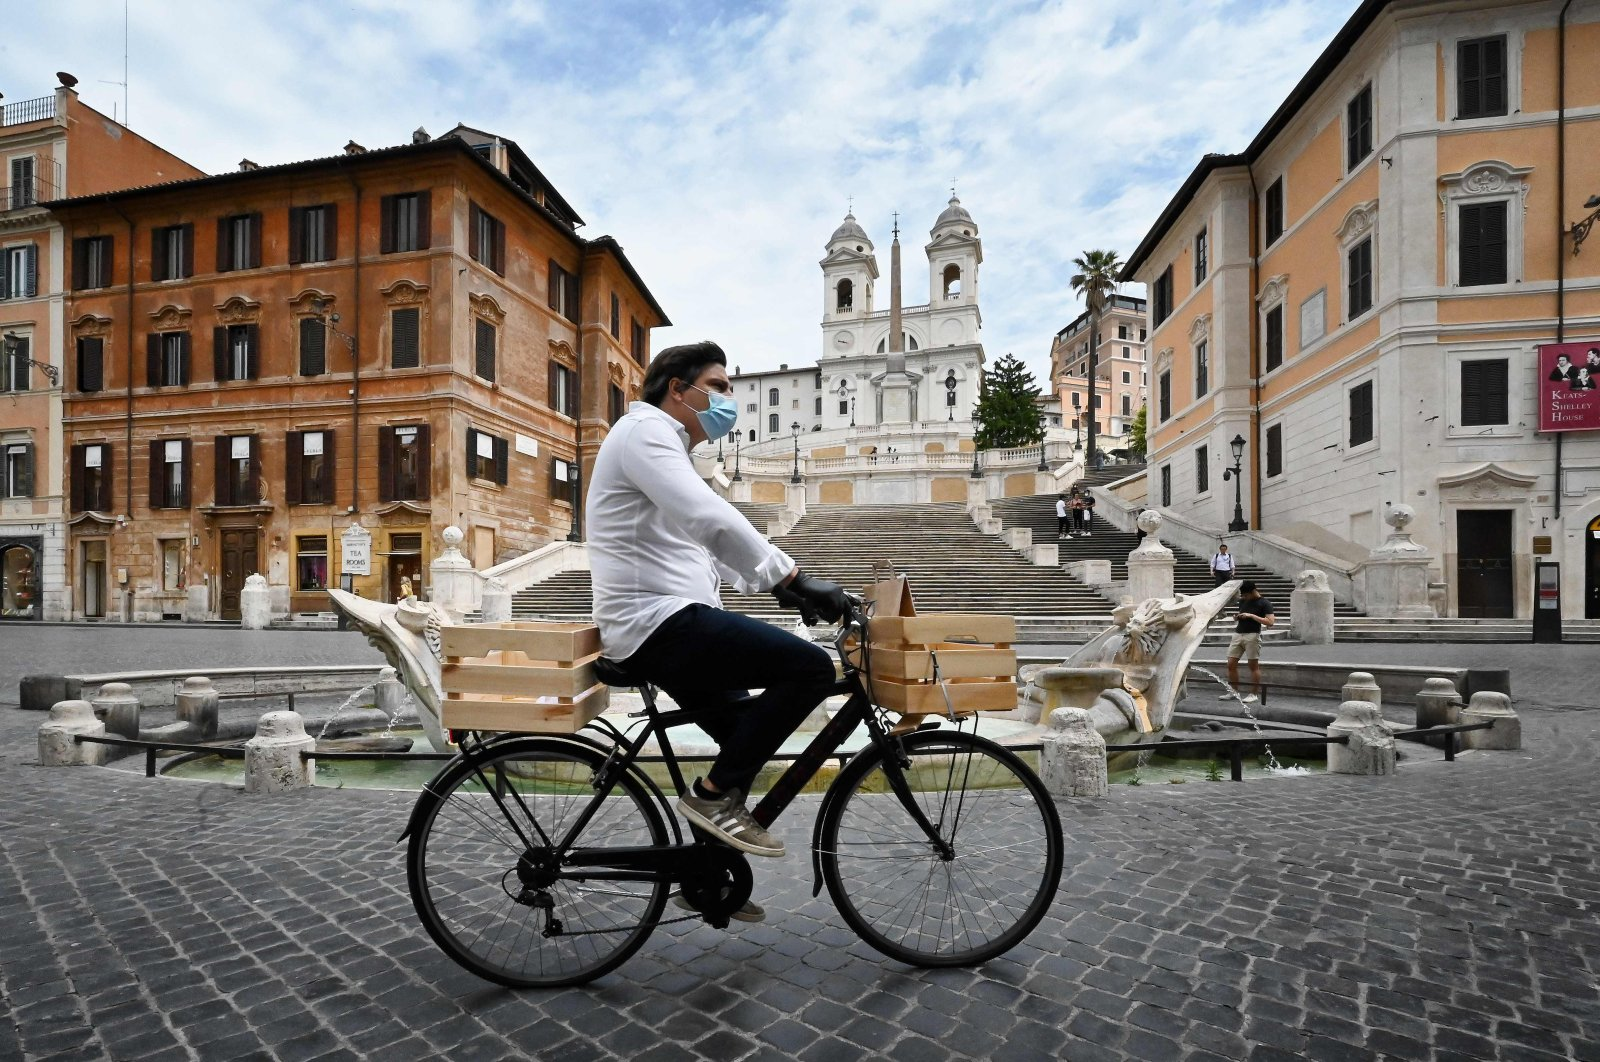 A delivery man rides a bicycle across Piazza di Spagna and the Spanish Steps, Rome, Italy, May 18, 2020. (AFP Photo)